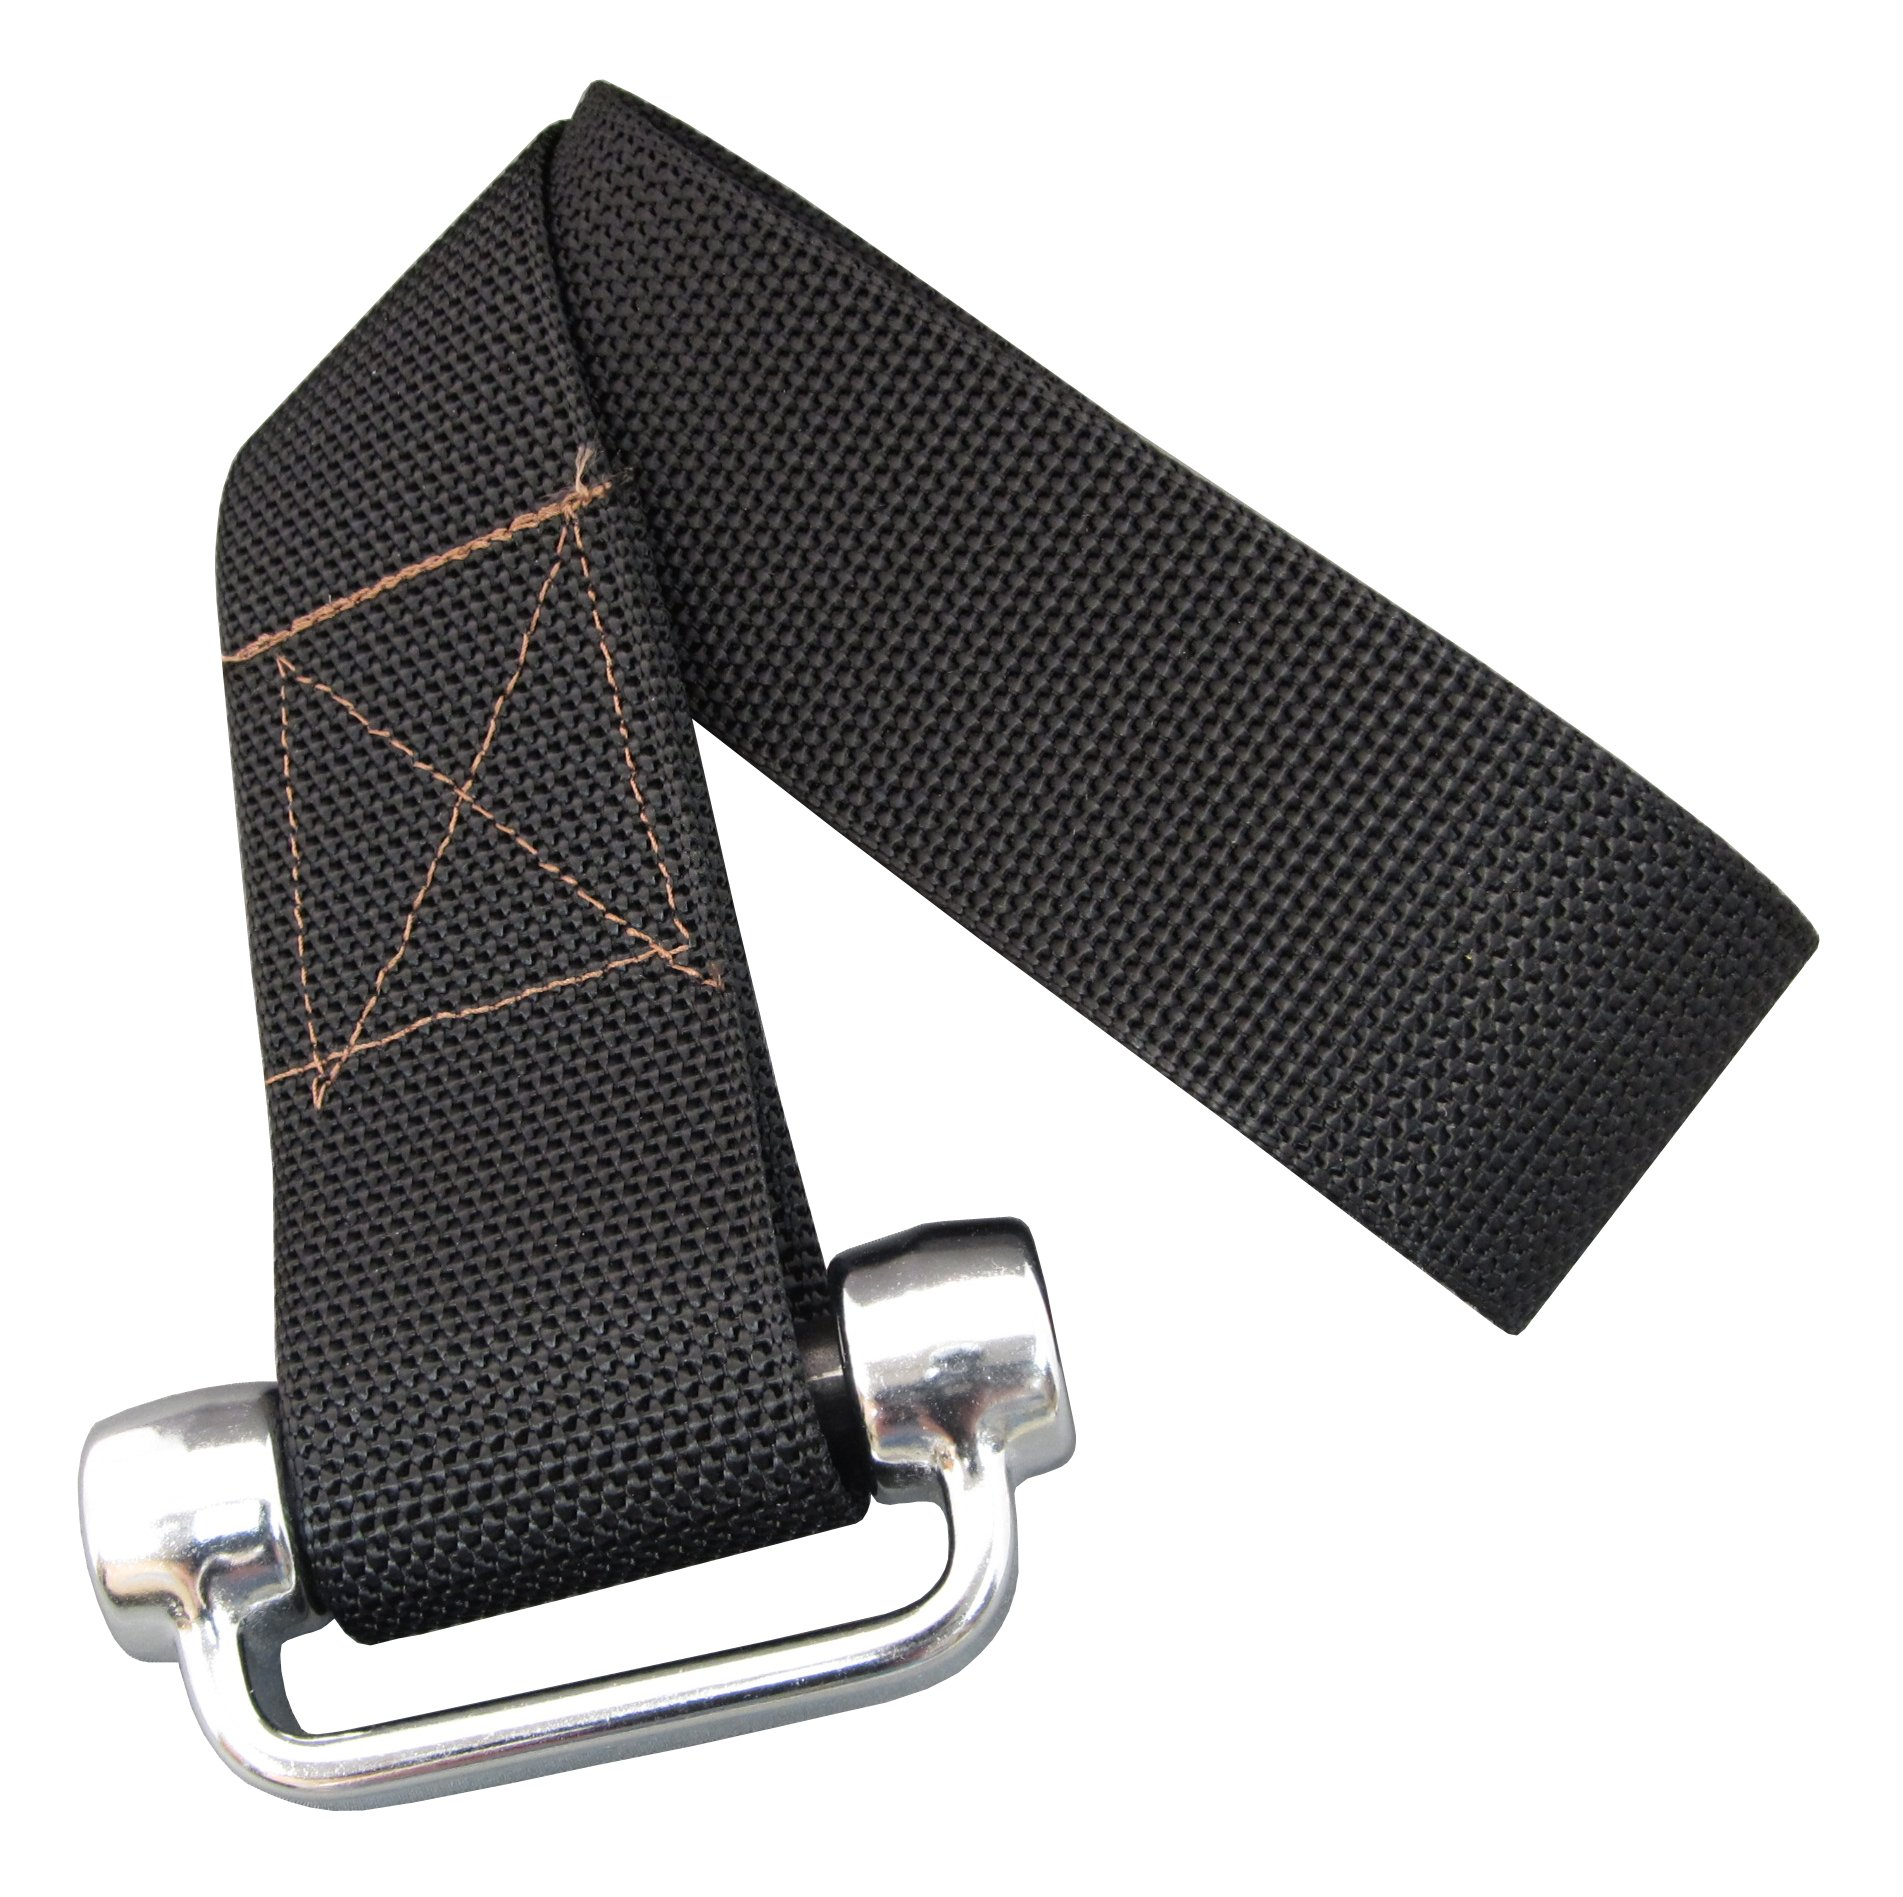 Heavy Duty Strap for Spin-On Filter